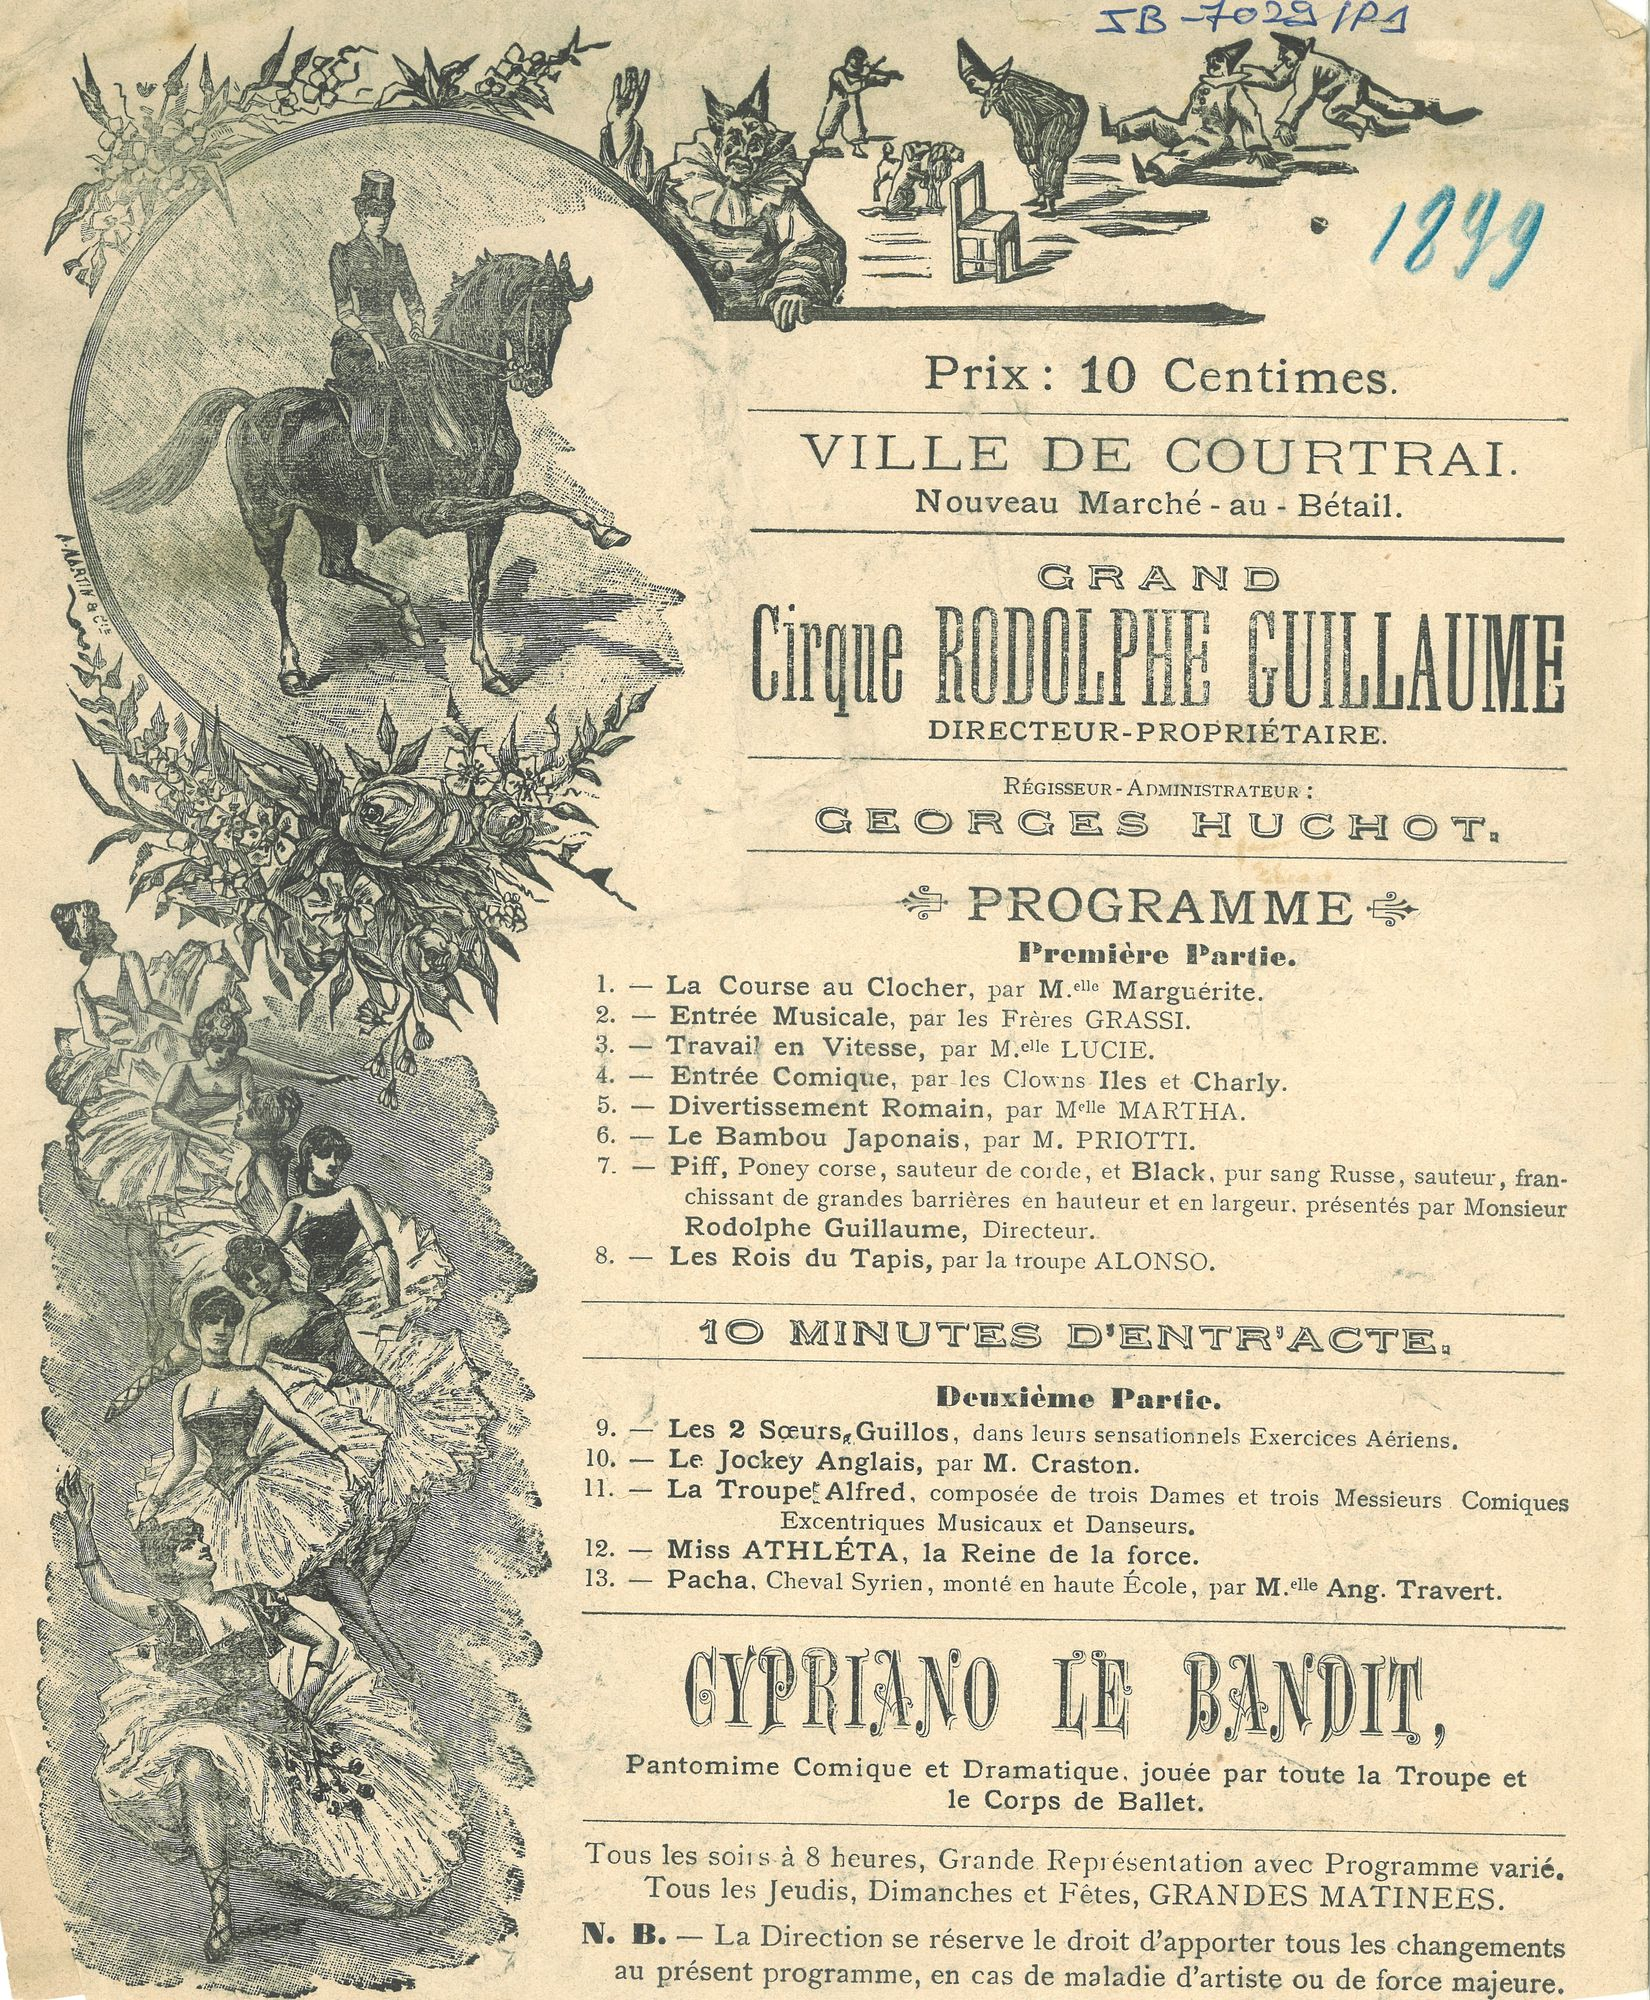 Paasfoor 1899: grand Cirque Rodolphe Guillaume